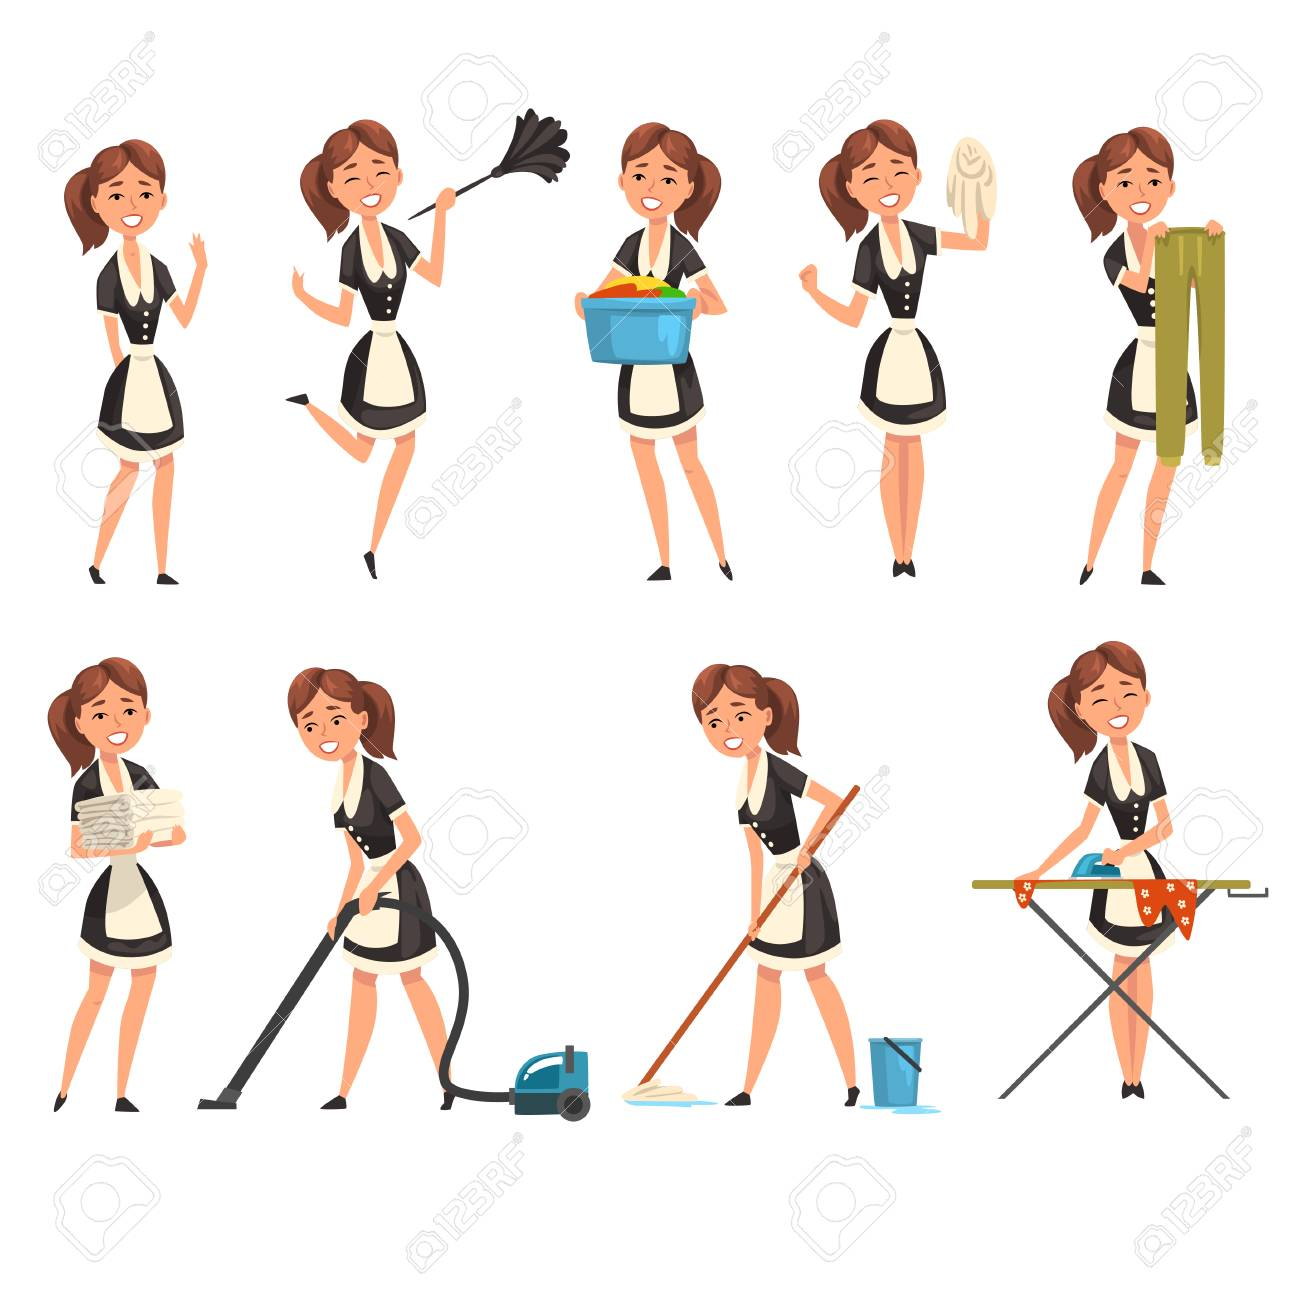 Smilling maid posing in different situations set, housemaid character wearing classic uniform, cleaning service vector Illustration isolated on a white background. - 115276732